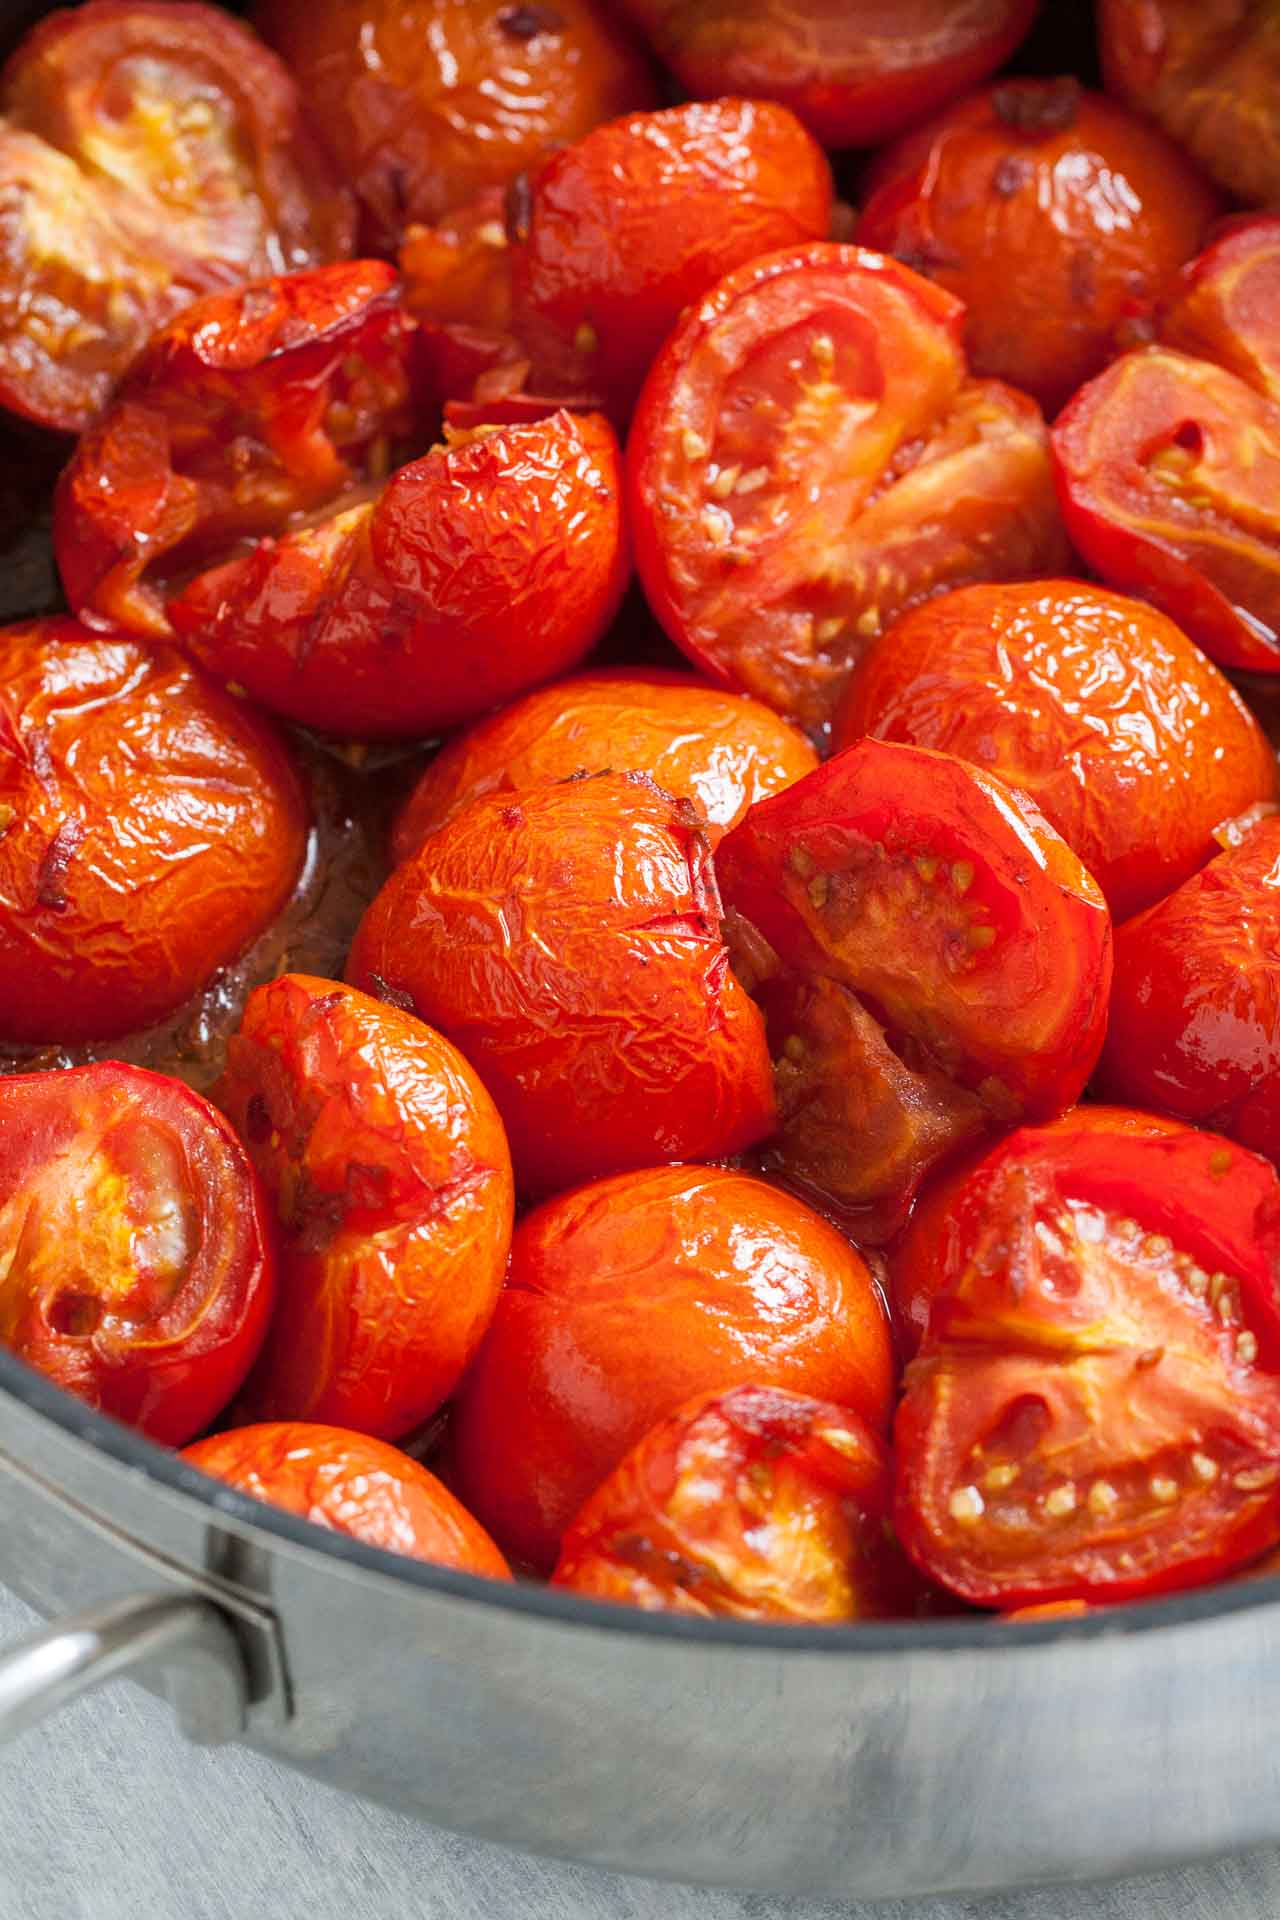 Roasted Tomatoes for the soup